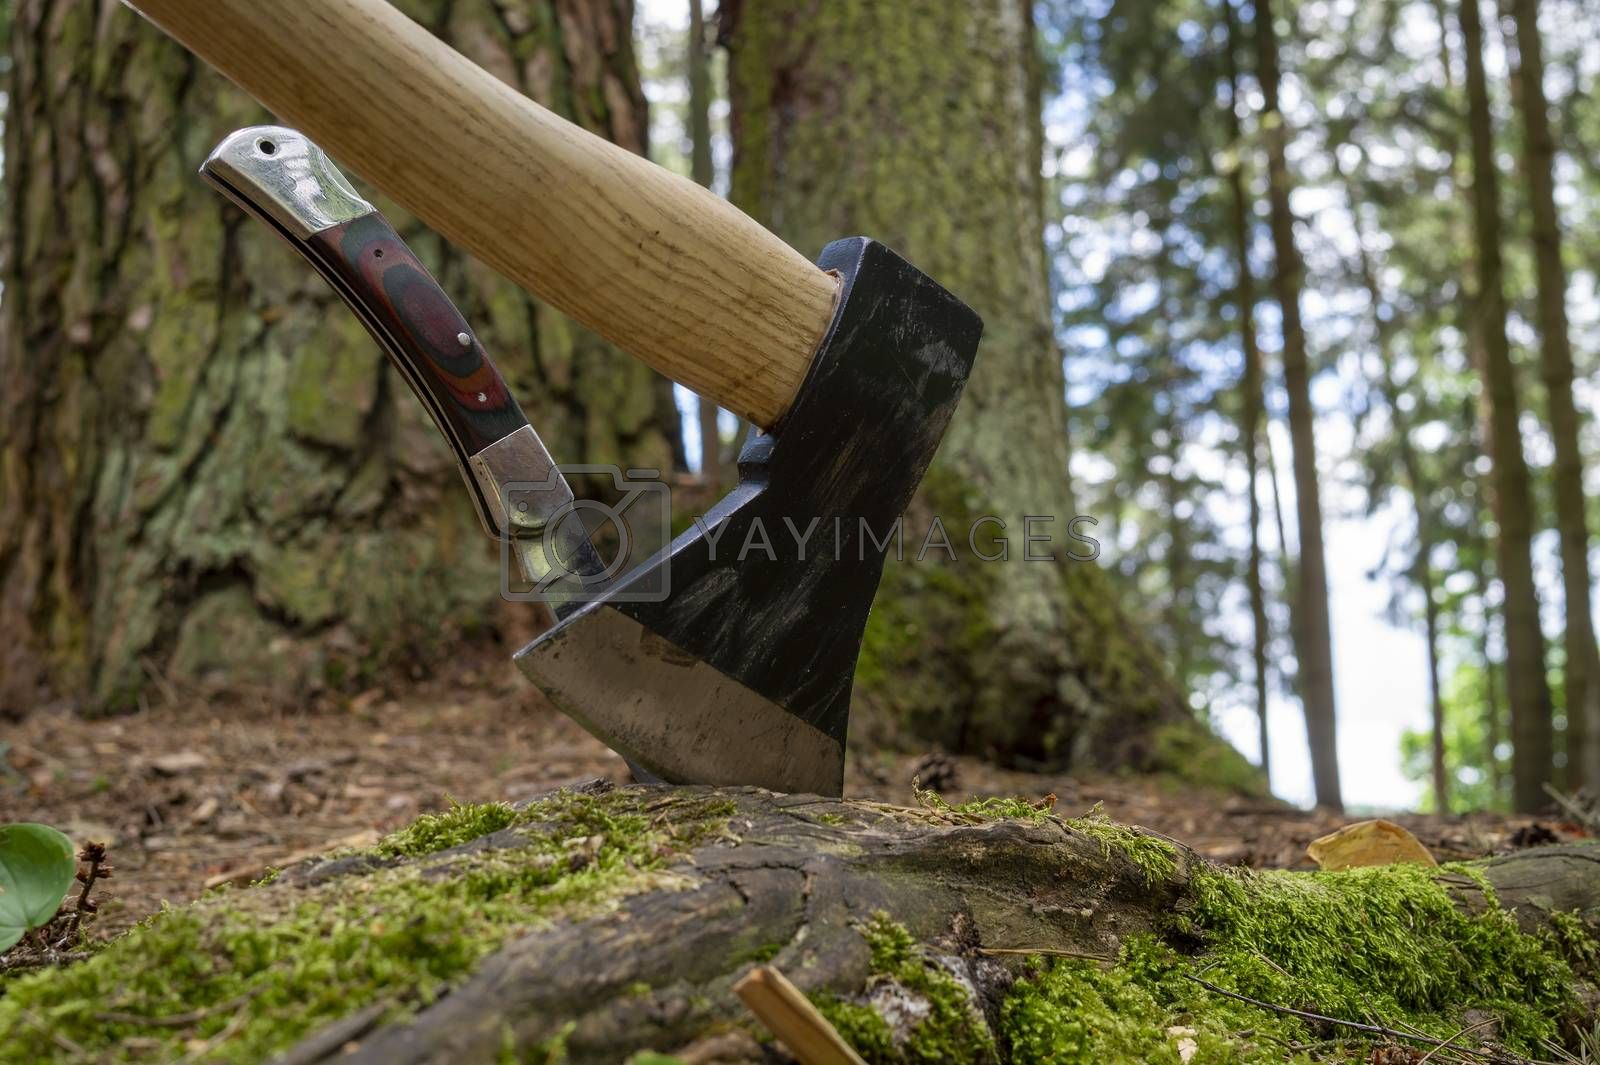 Axe or chopper with folding pocket knife with their blades stuck in a moss covered log of wood in a forest in a close up side view